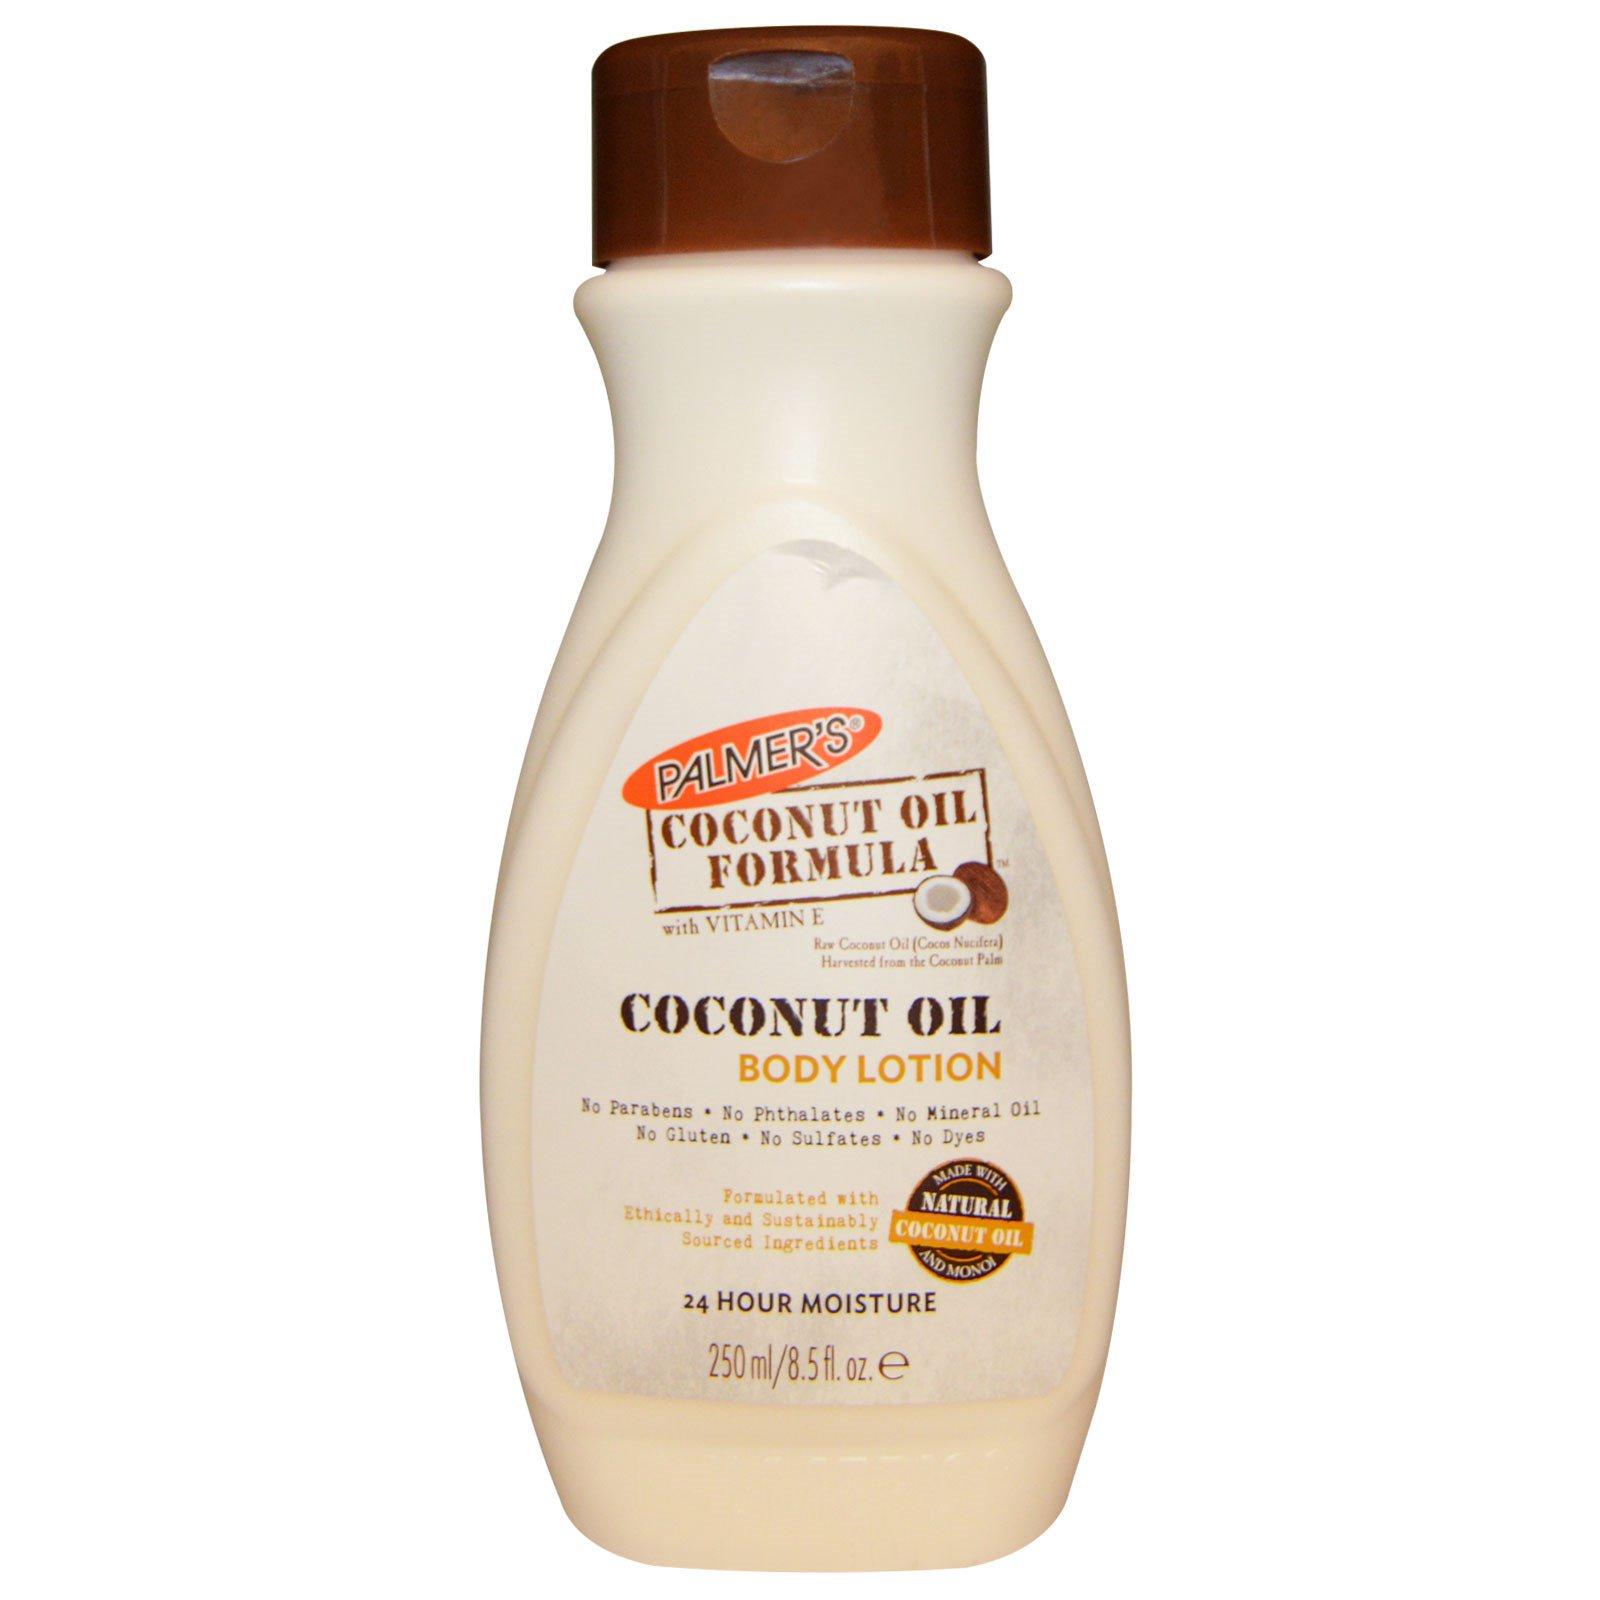 1303a93a0efa Palmer's, Coconut Oil Formula, Body Lotion, 8.5 fl oz (250 ml ...